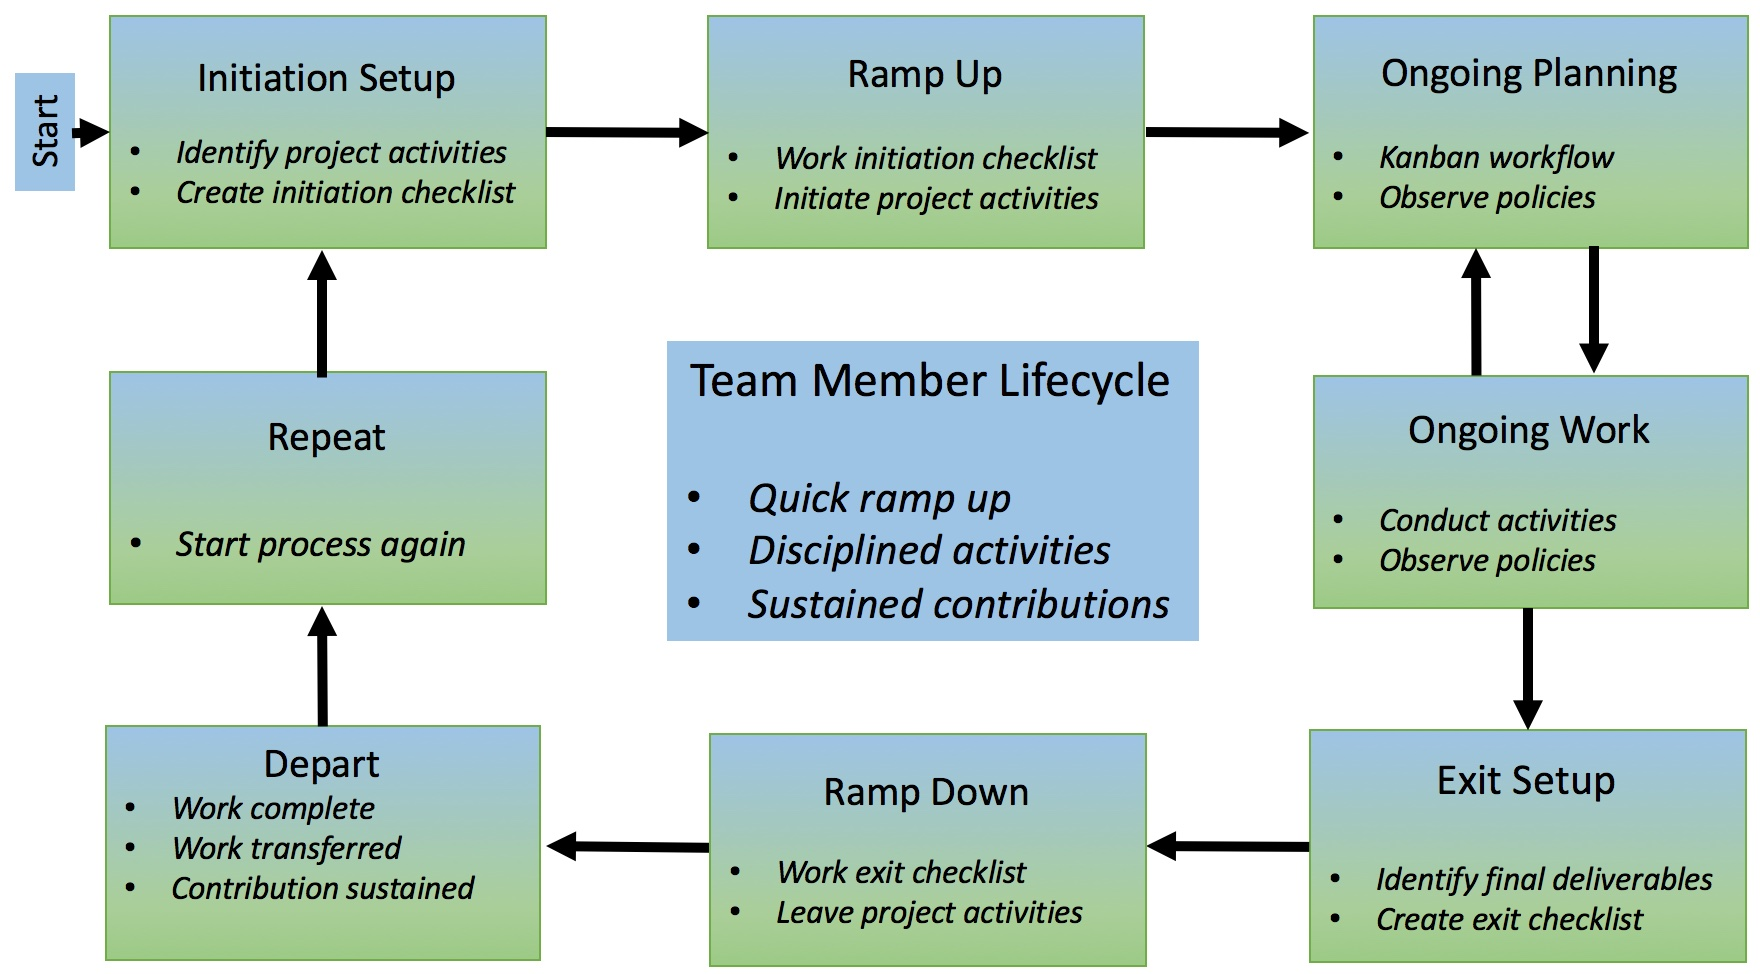 Team Member Lifecycle